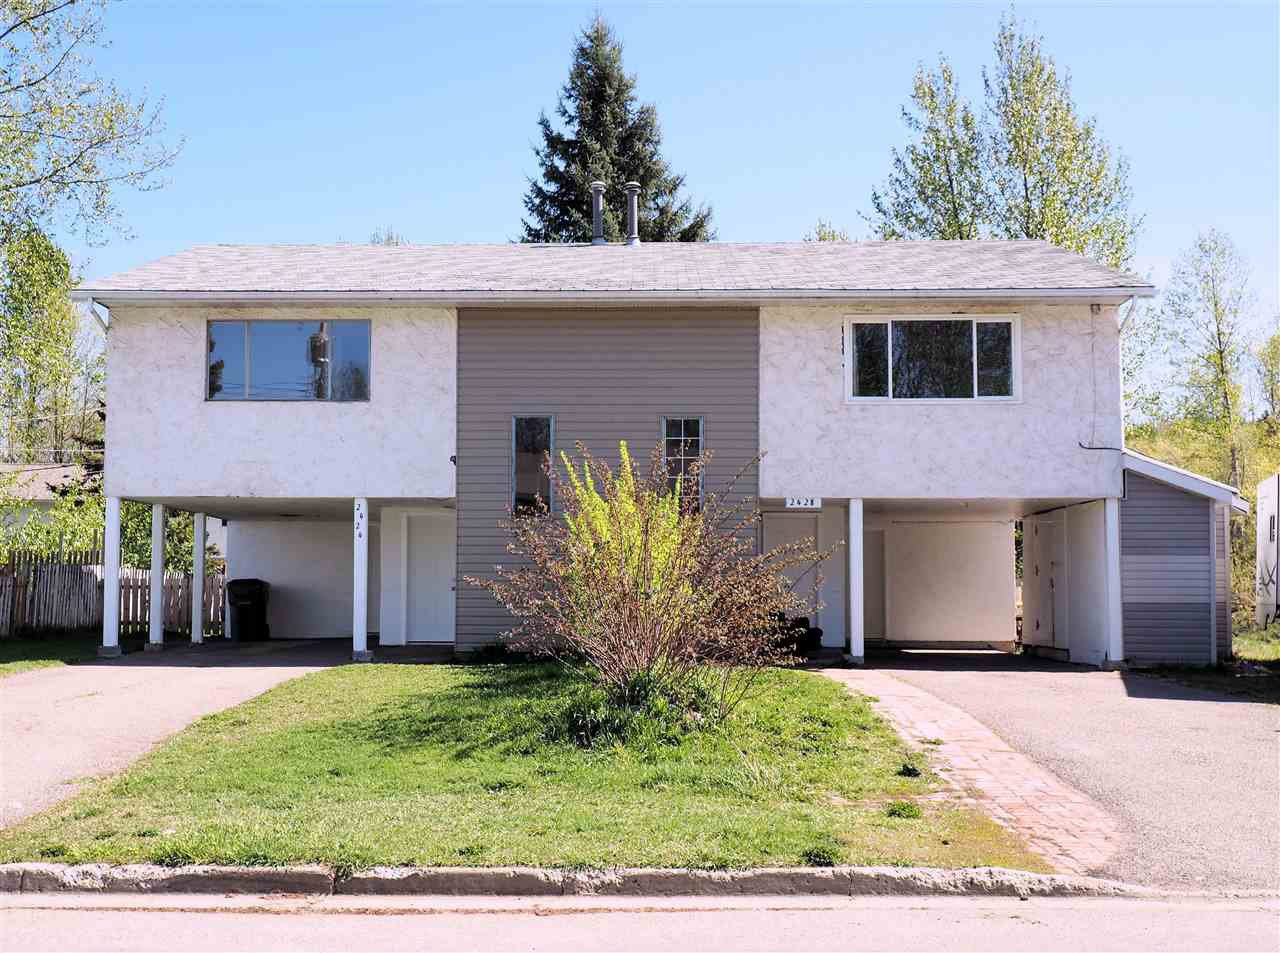 Main Photo: 2424 - 2428 OAK Street in Prince George: VLA House Duplex for sale (PG City Central (Zone 72))  : MLS®# R2060127